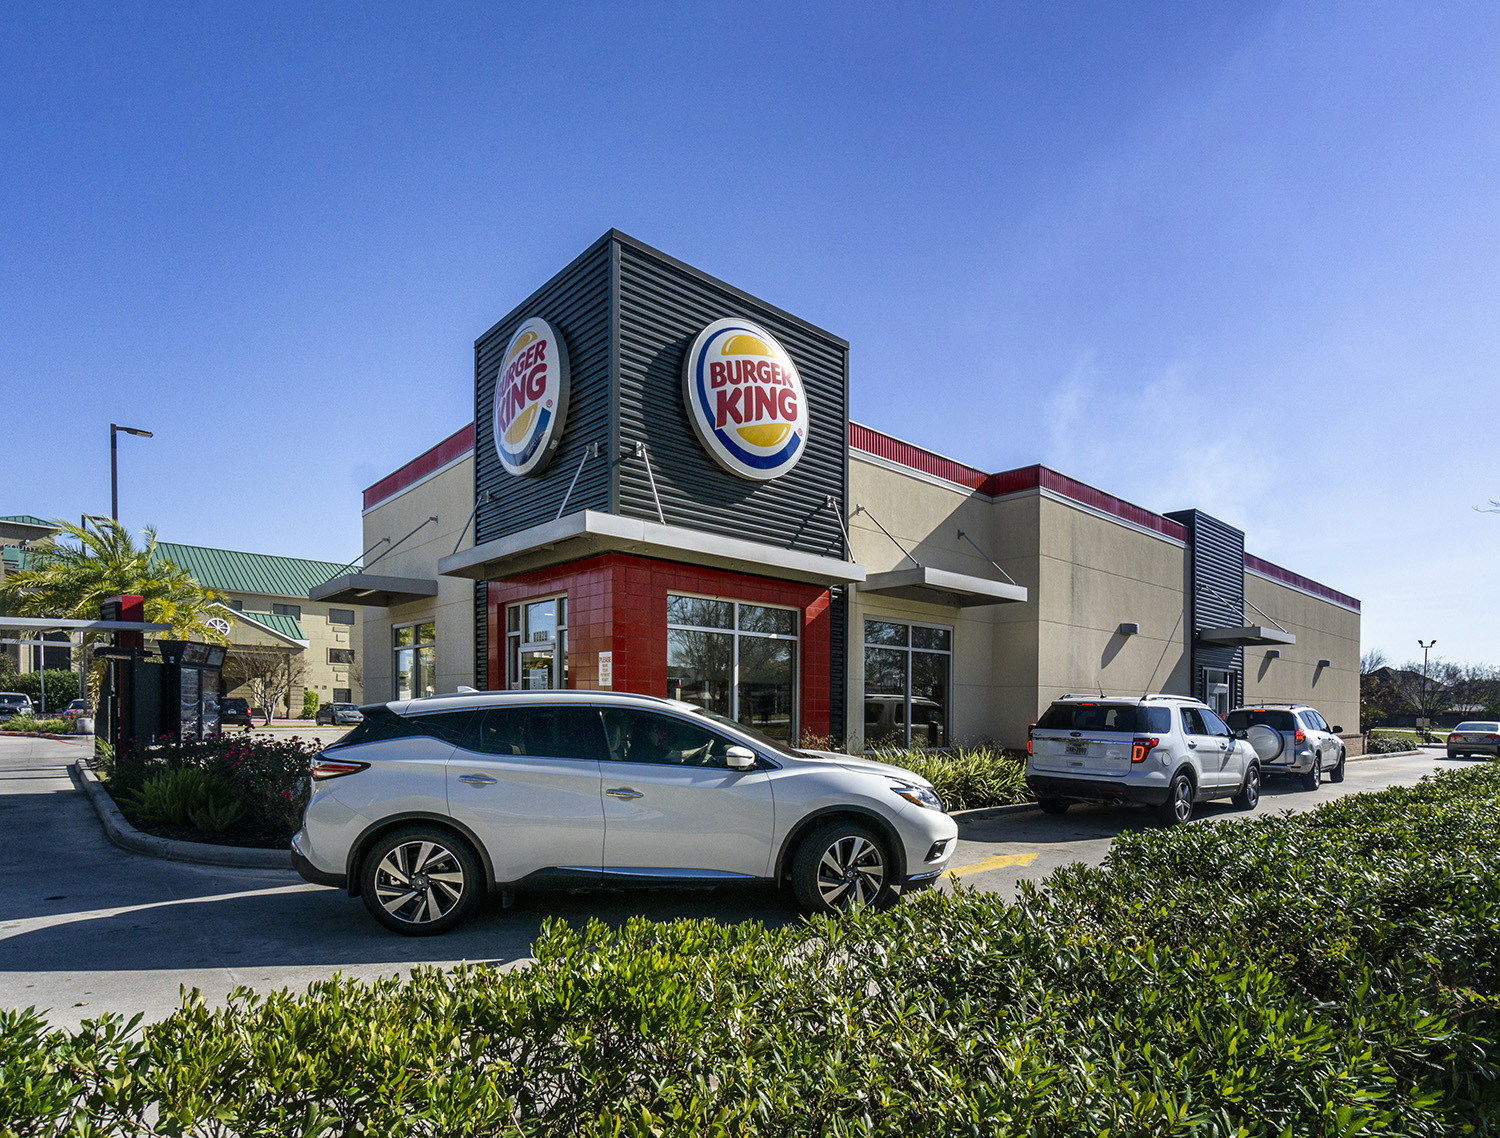 Hanley Investment Group Arranges Sale of New Single-Tenant Burger King Prototype with Double-Drive Thru in Houston 14